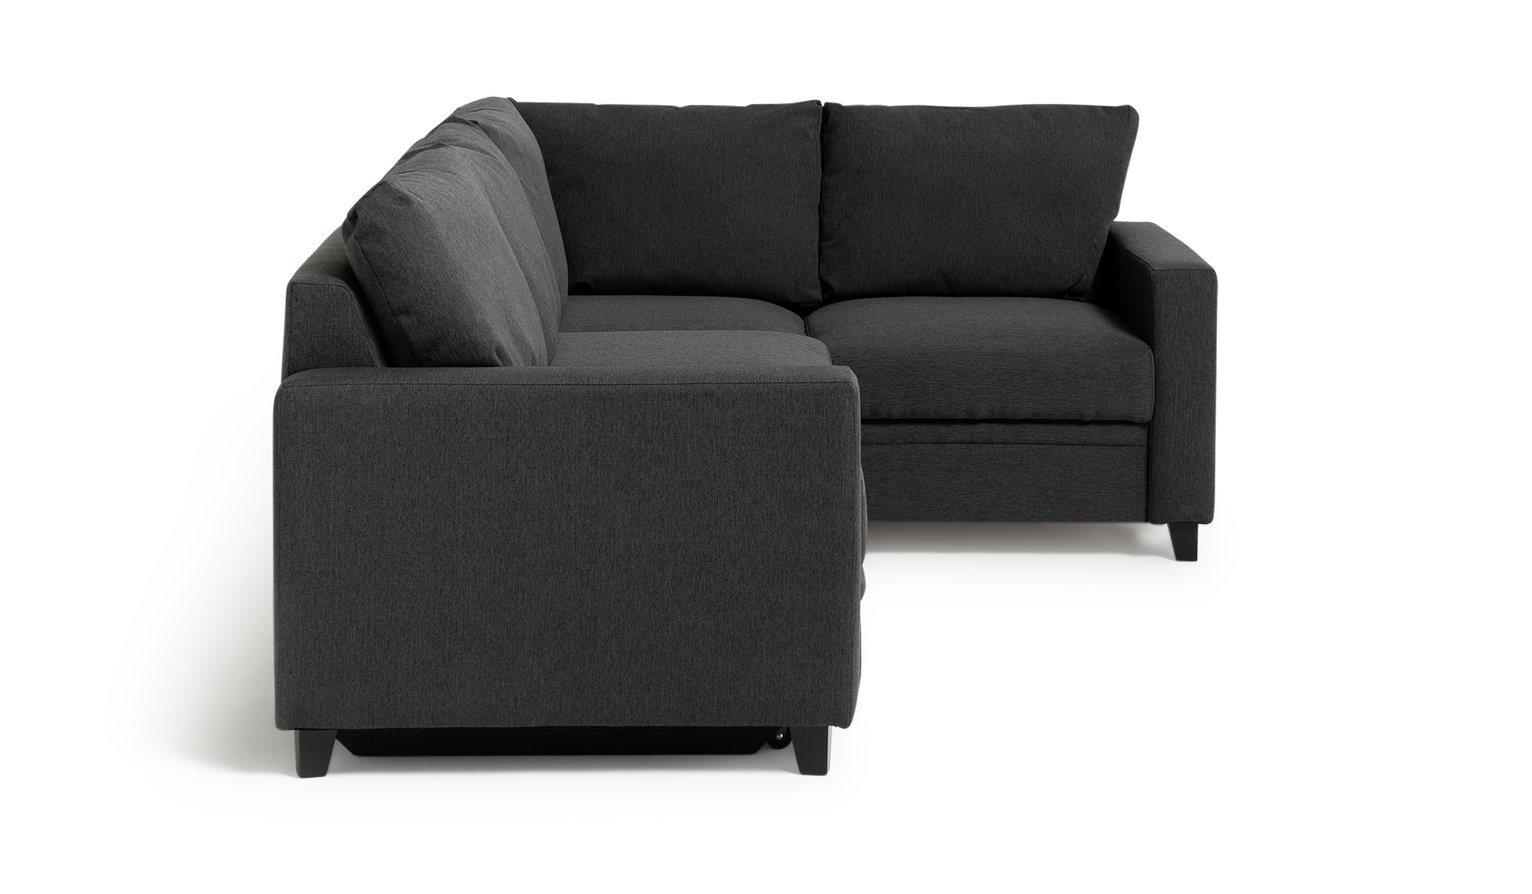 Argos Home Seattle Right Corner Fabric Sofa Bed - Charcoal